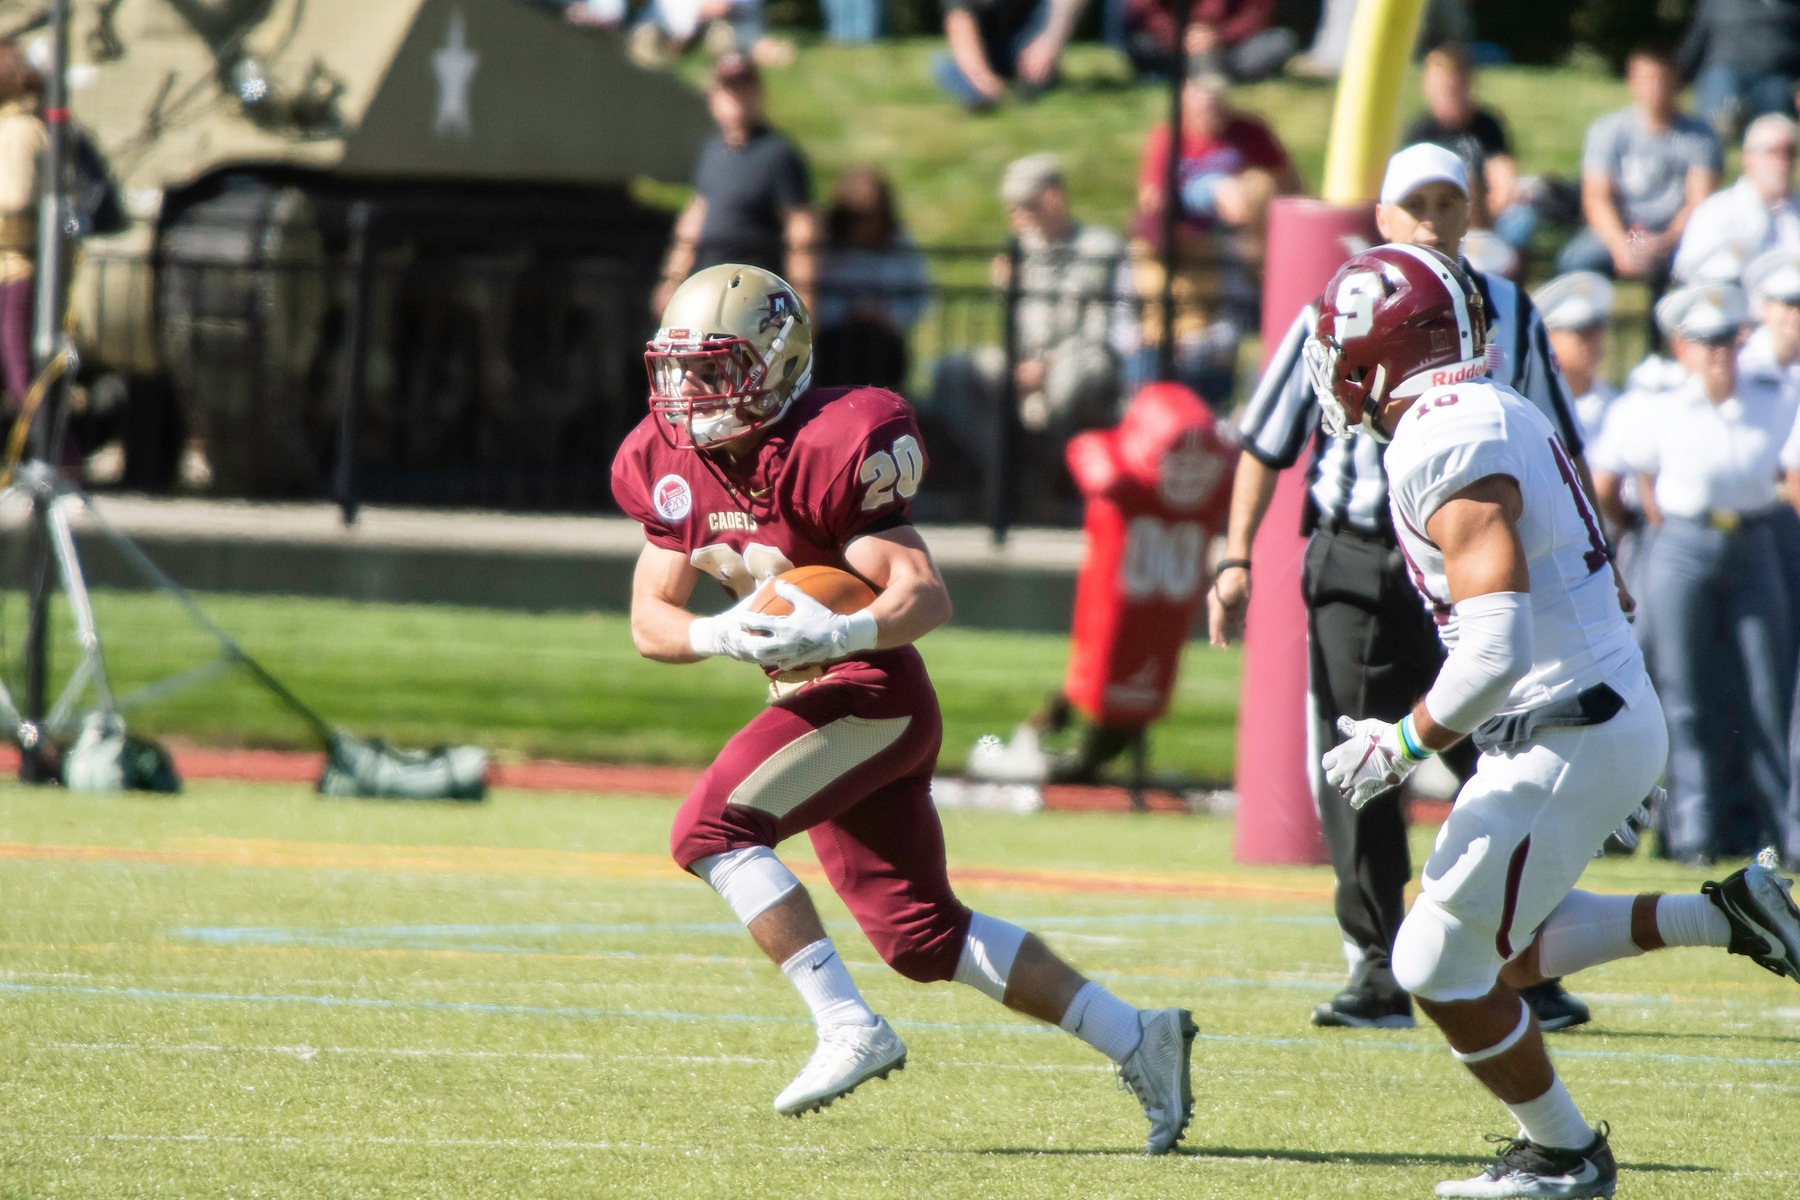 Football: Cadets take NEWMAC victory from Maine Maritime, 15-7